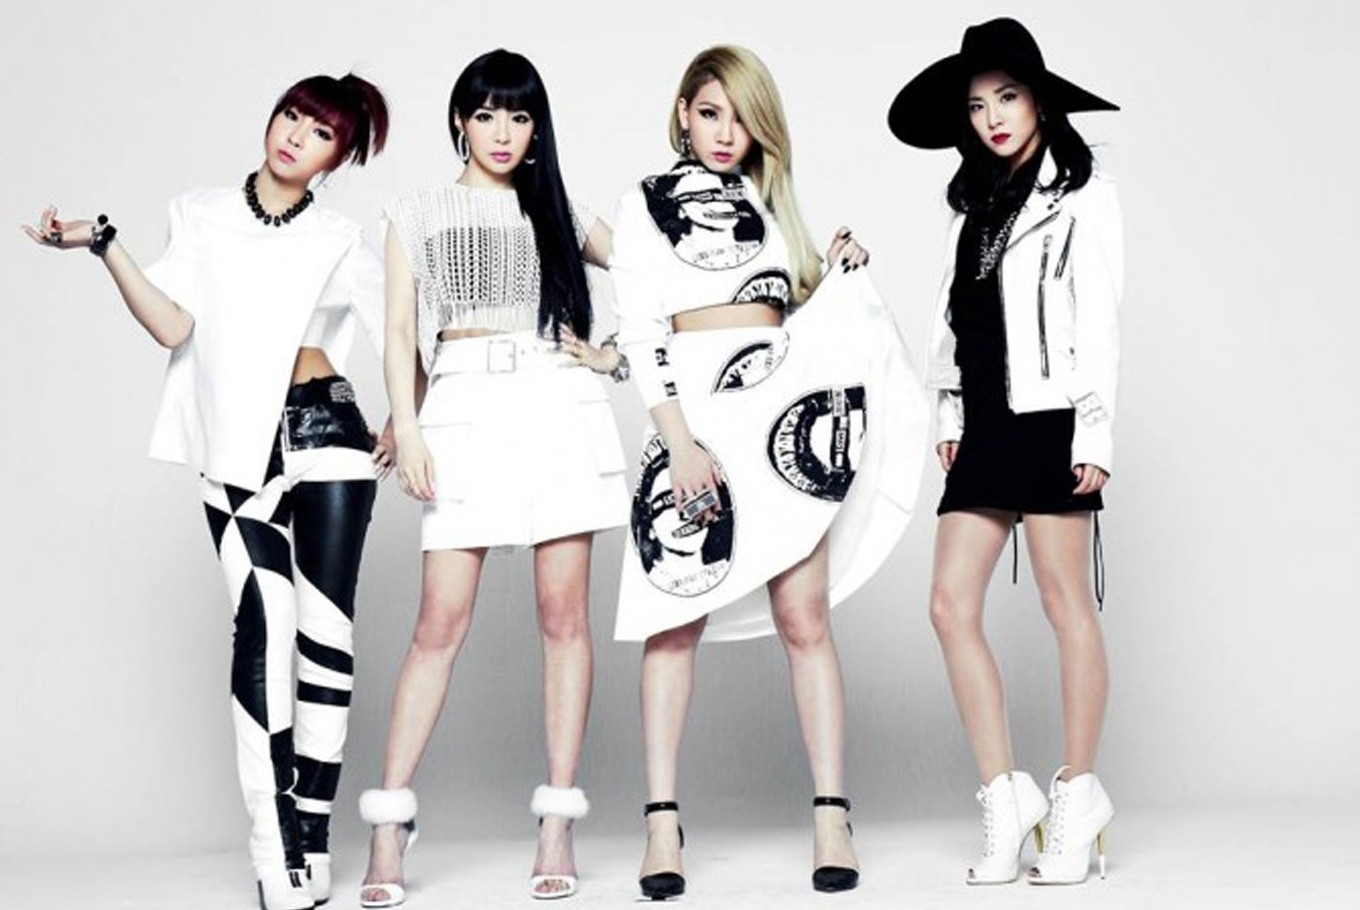 2NE1 officially disbands - Entertainment - The Jakarta Post